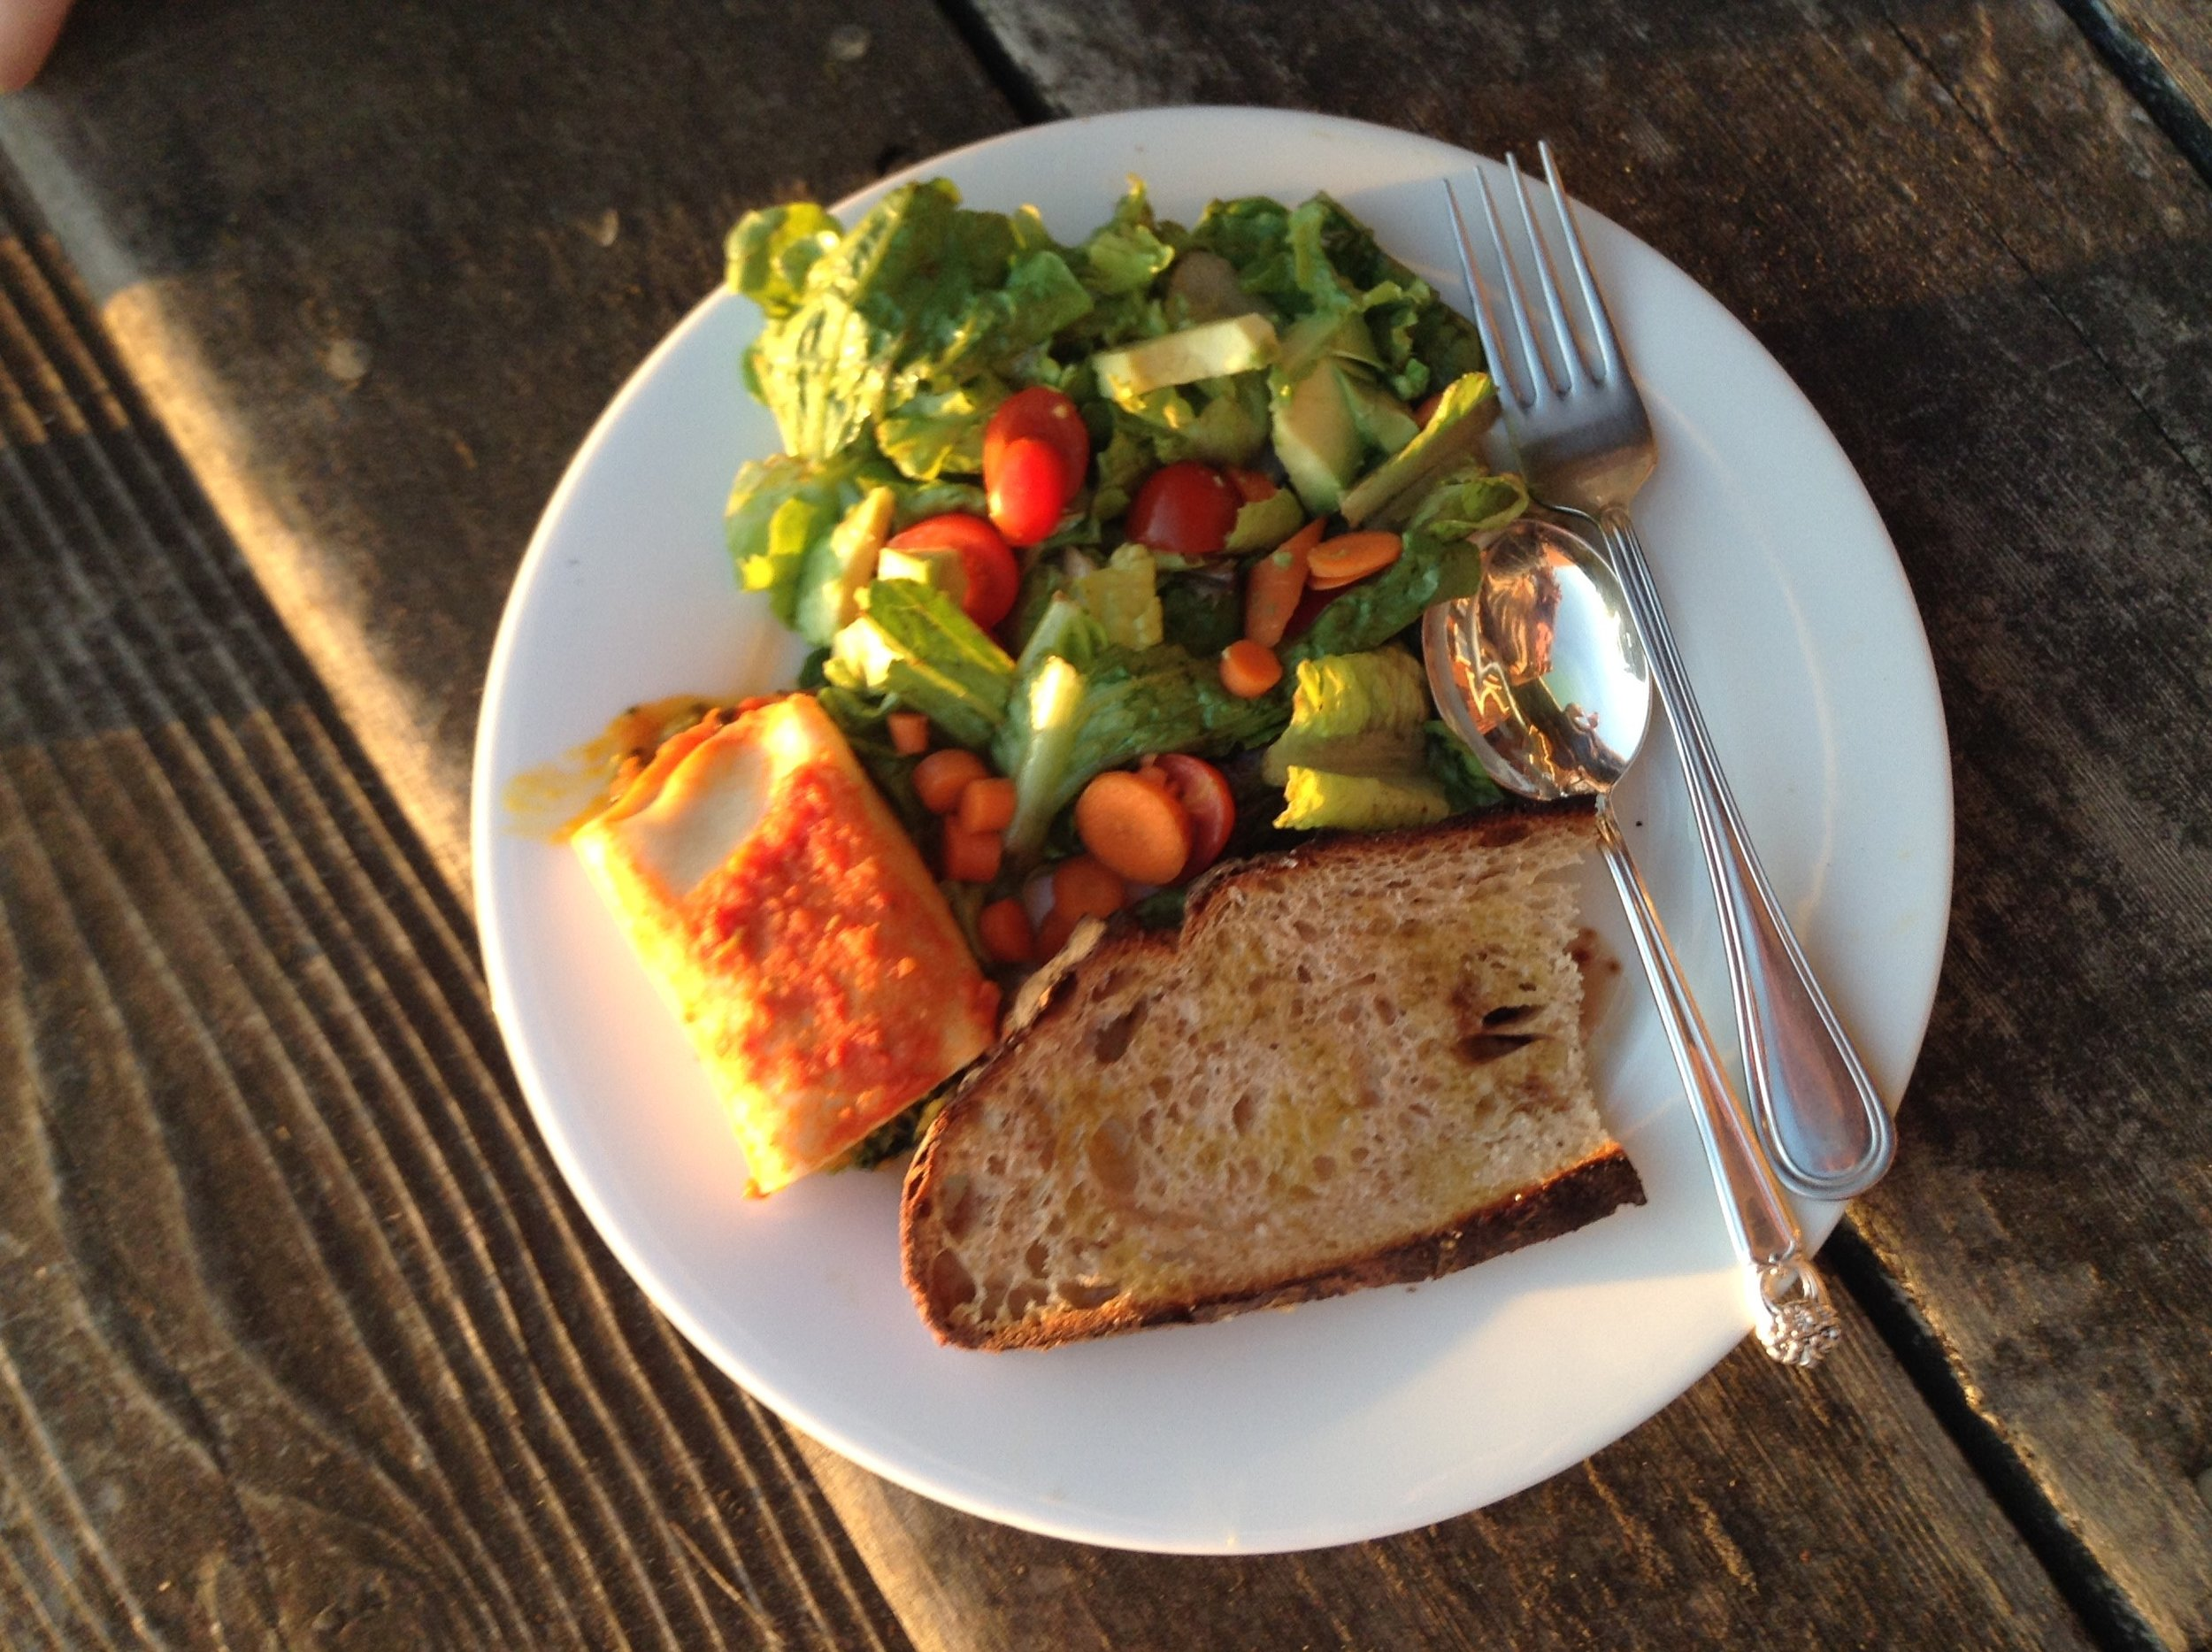 Vegetable cannelloni, green salad, and brown bread drizzled with olive oil—delicious.